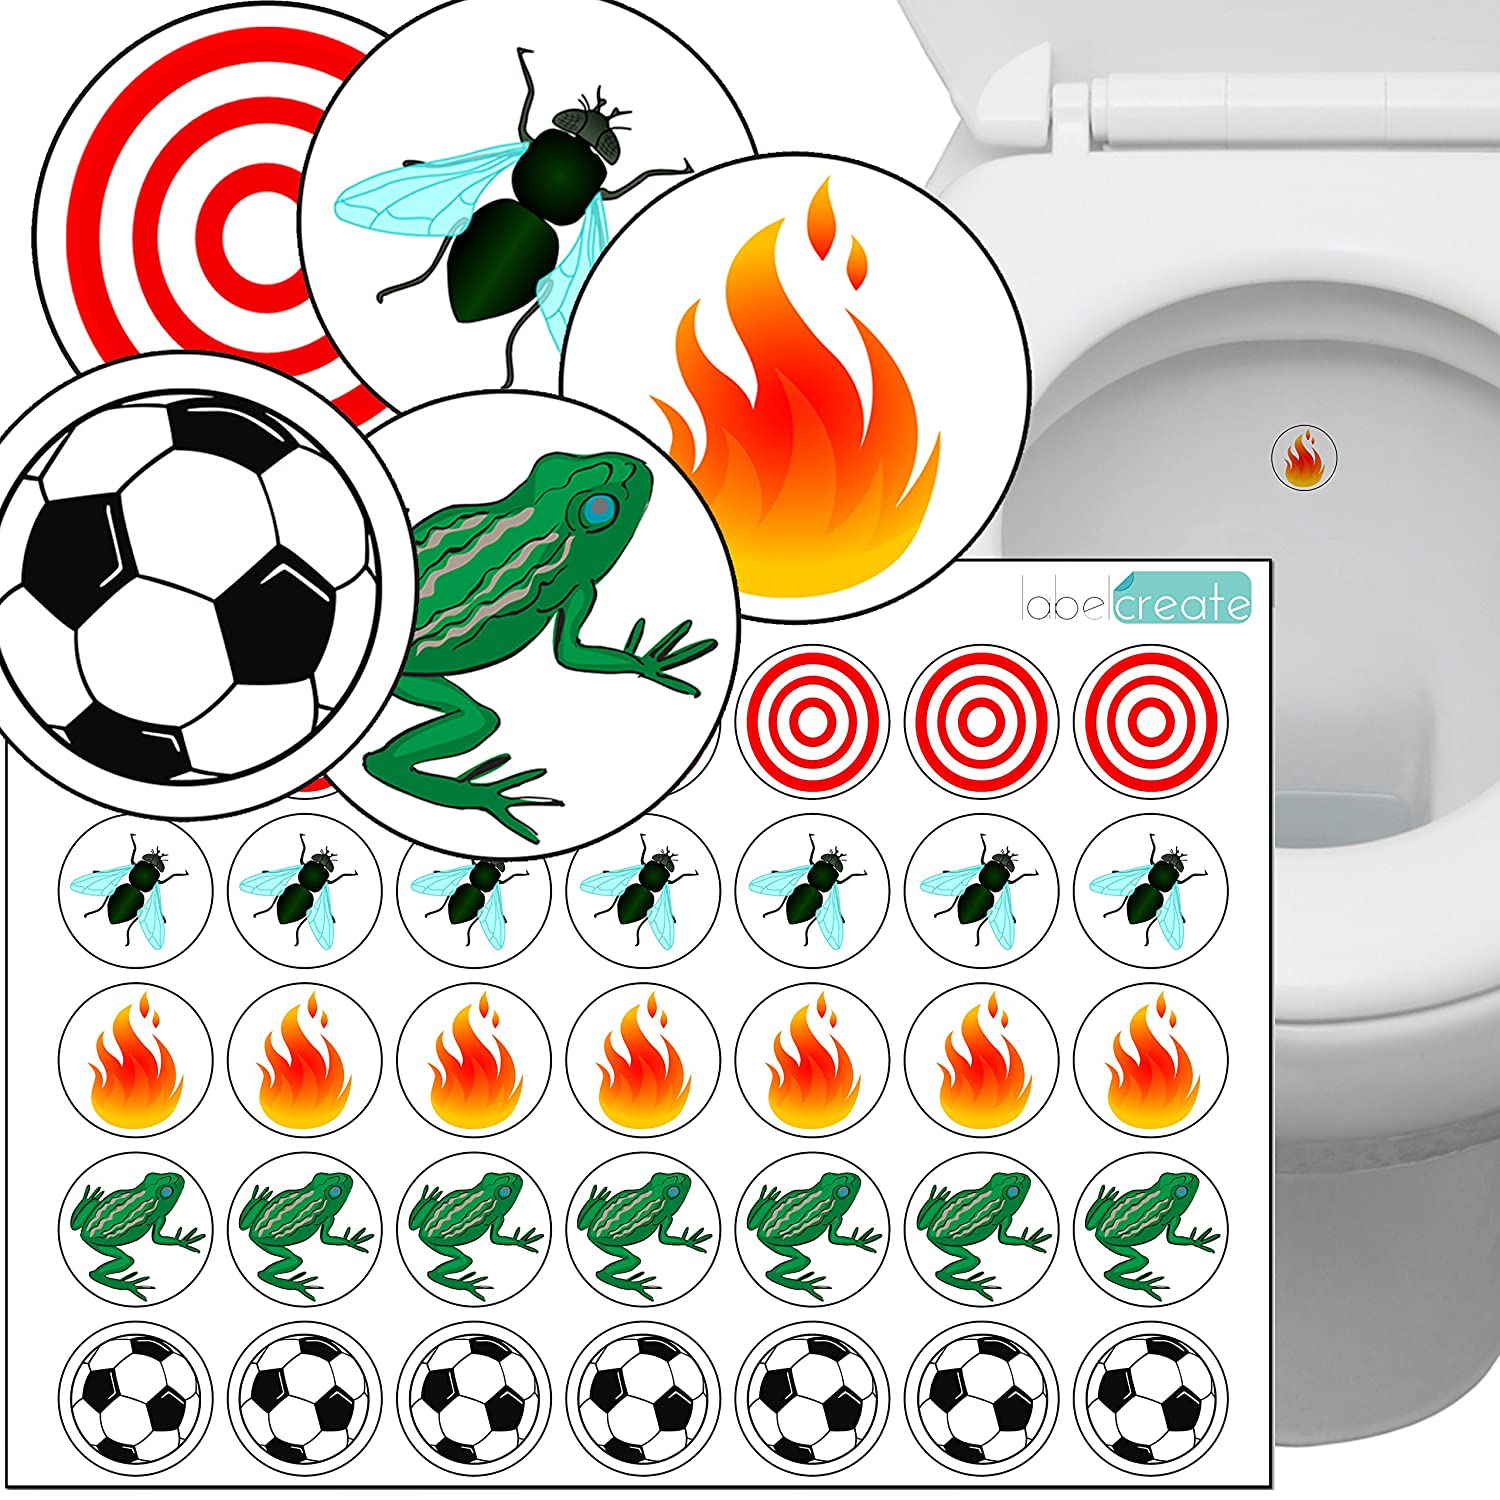 Toilet Thingies - Variety Pack of 35 Toilet Training Stickers. Superior Quality Transparent Plastic Label Material. Free UK Delivery. Label Create